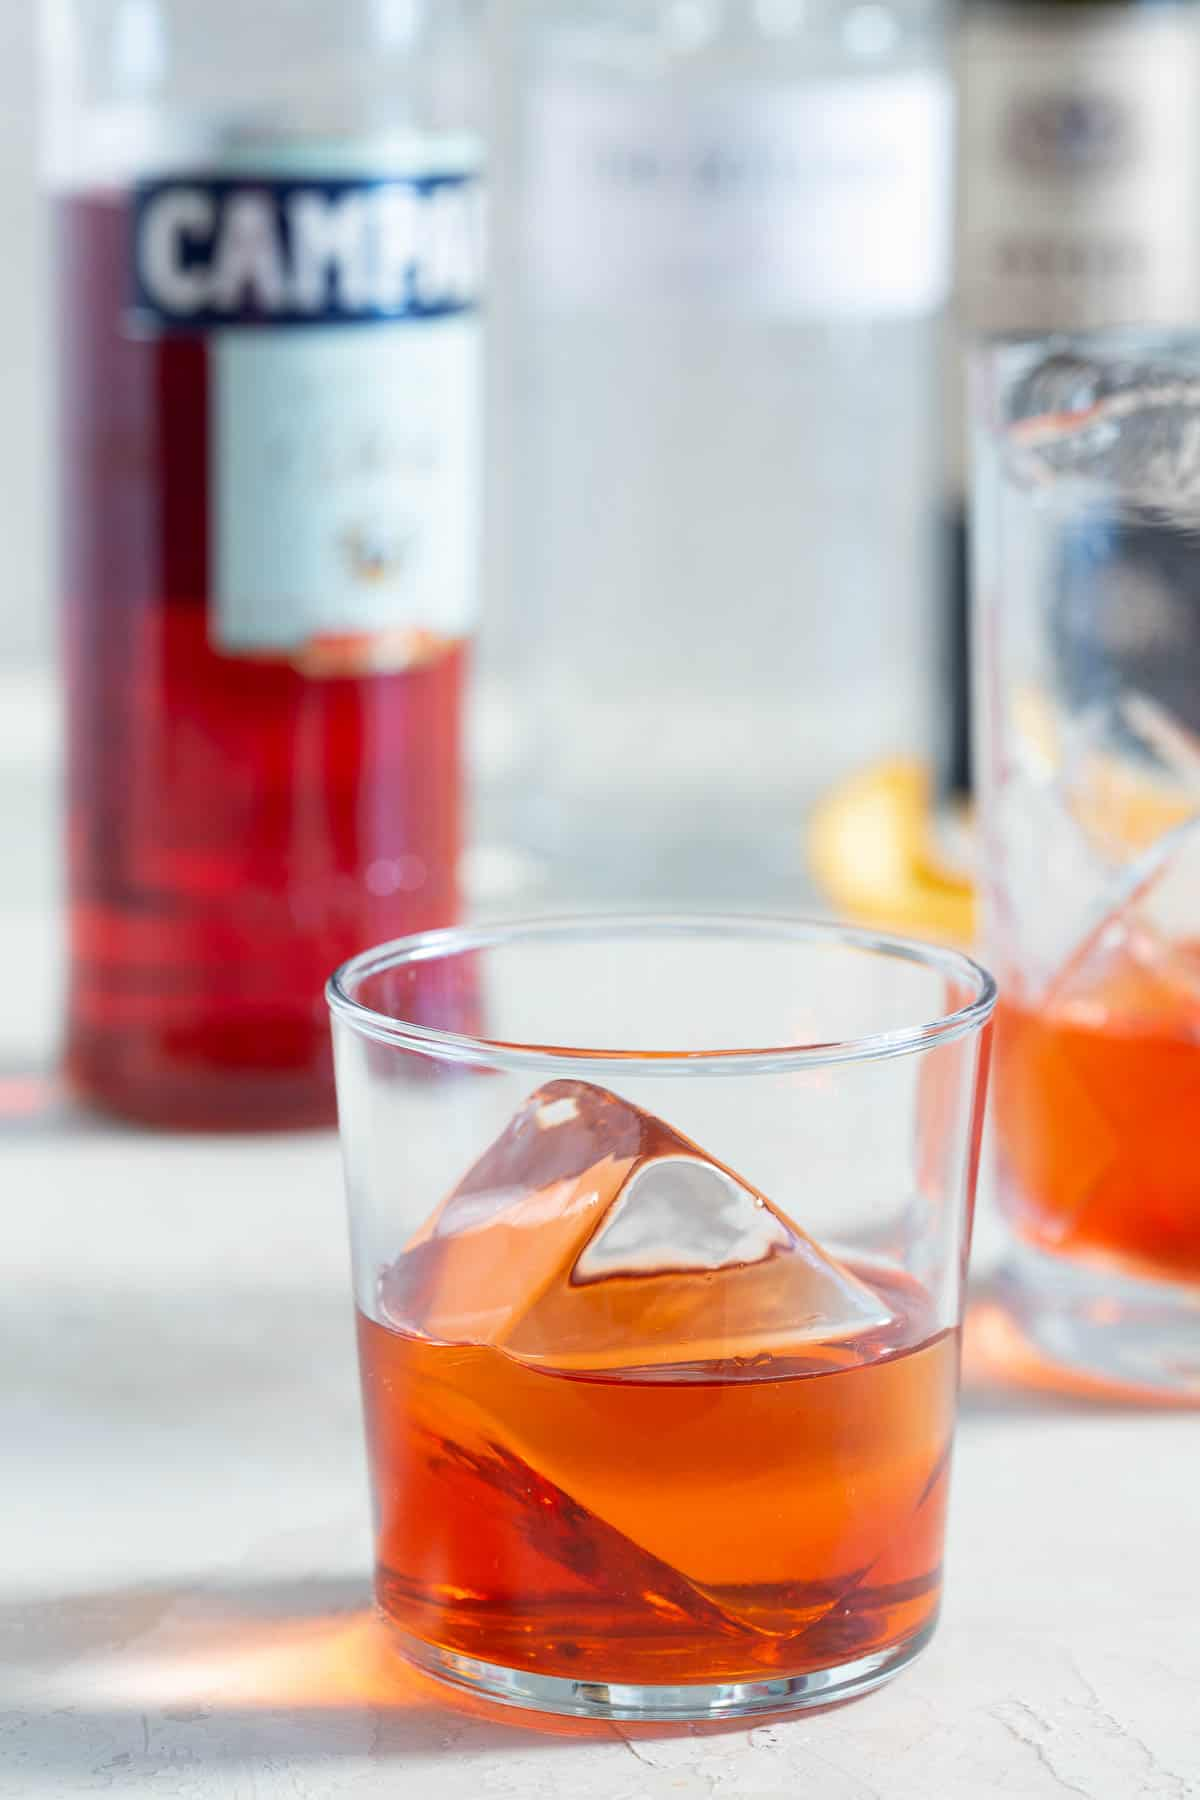 Negroni in a clear rocks glass with a large ice cube